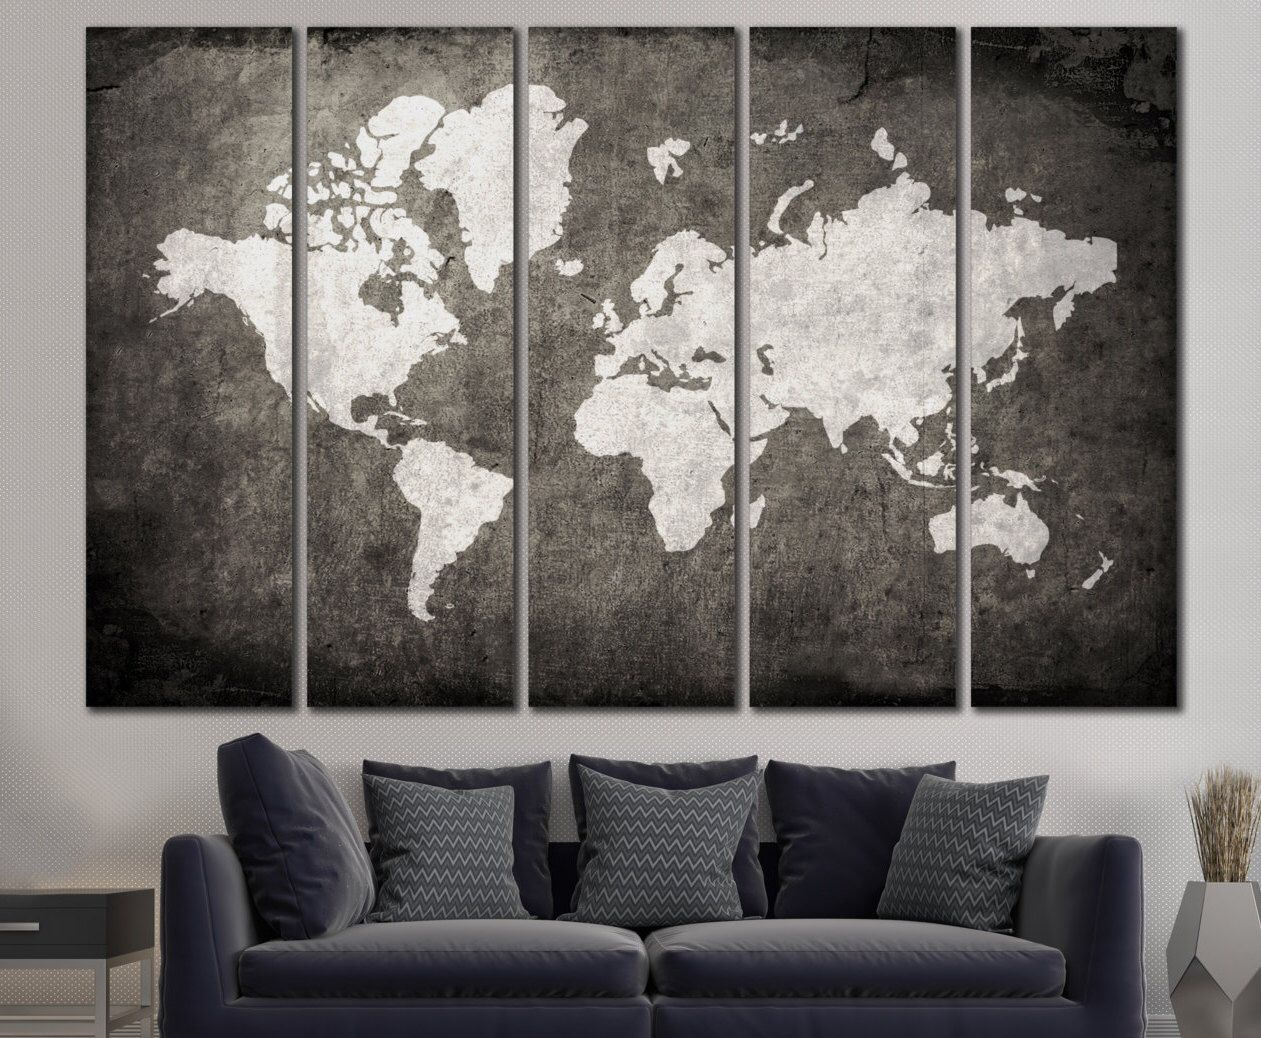 Large world map canvas print wall art 13 or 5 panel art extra large world map canvas print wall art 13 or 5 panel art extra gumiabroncs Images